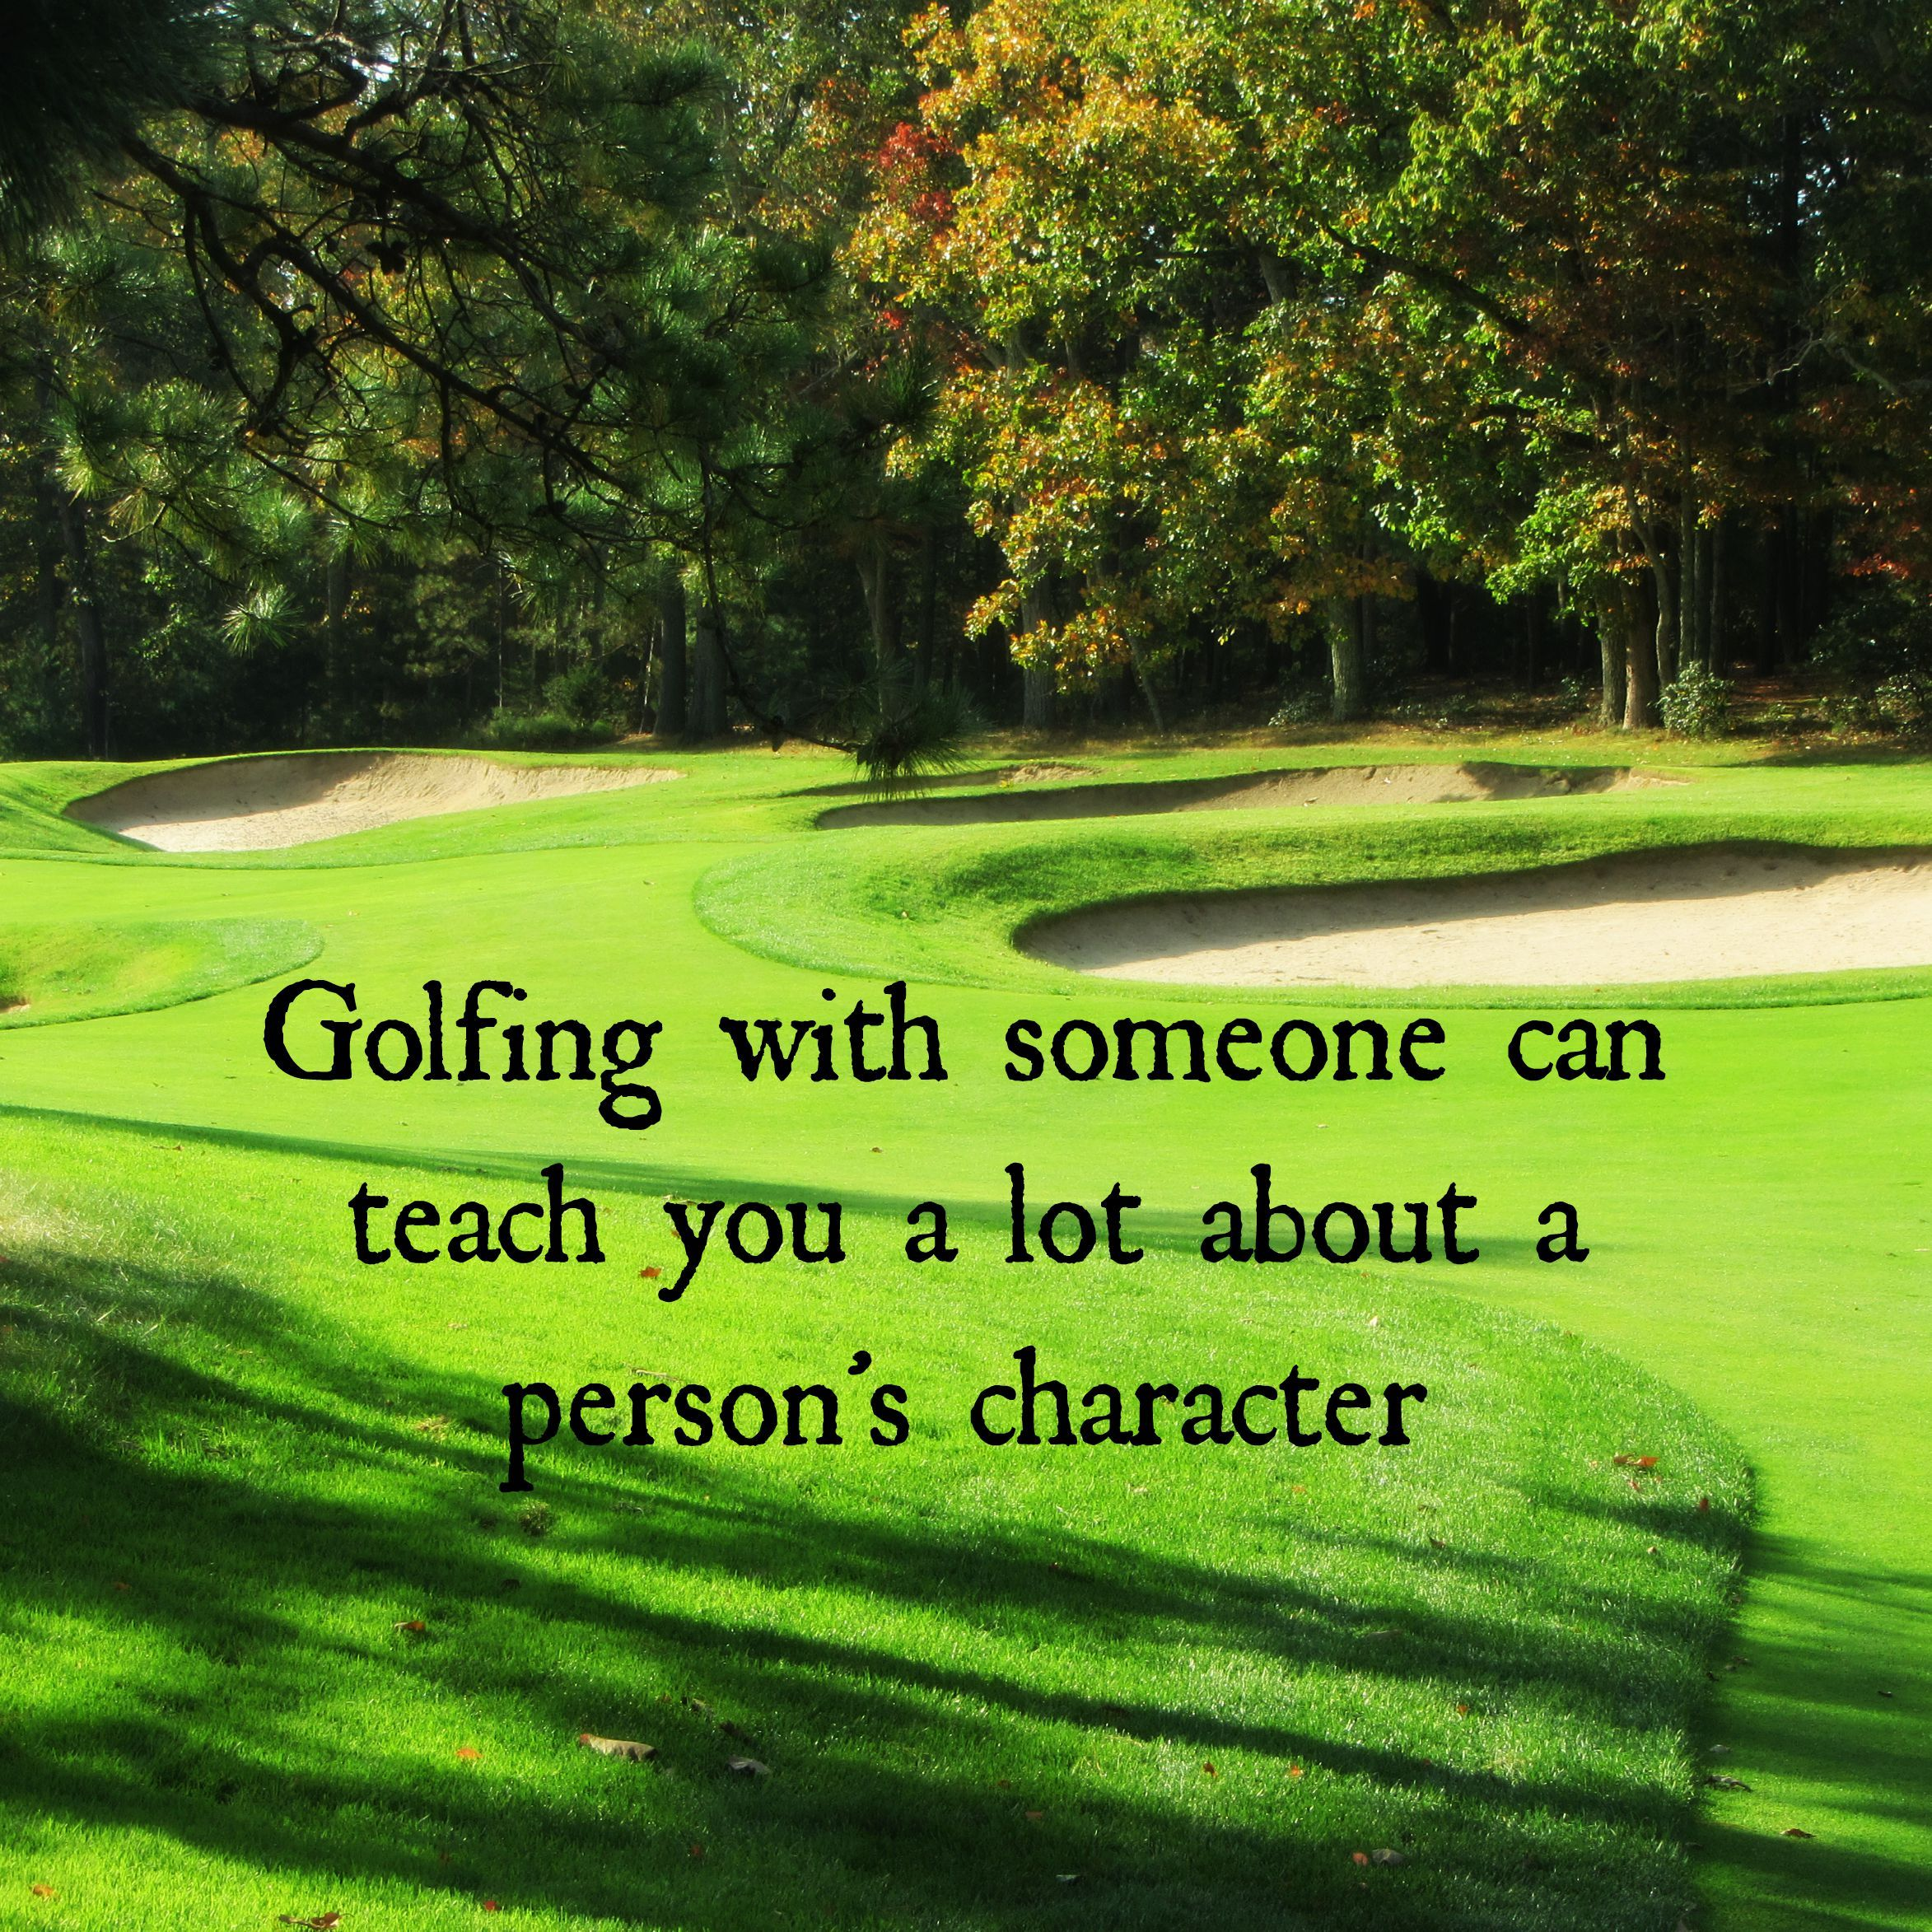 Inspirational Golf Quotes Golf Reveals People's True Character Whyilovethisgame Golf